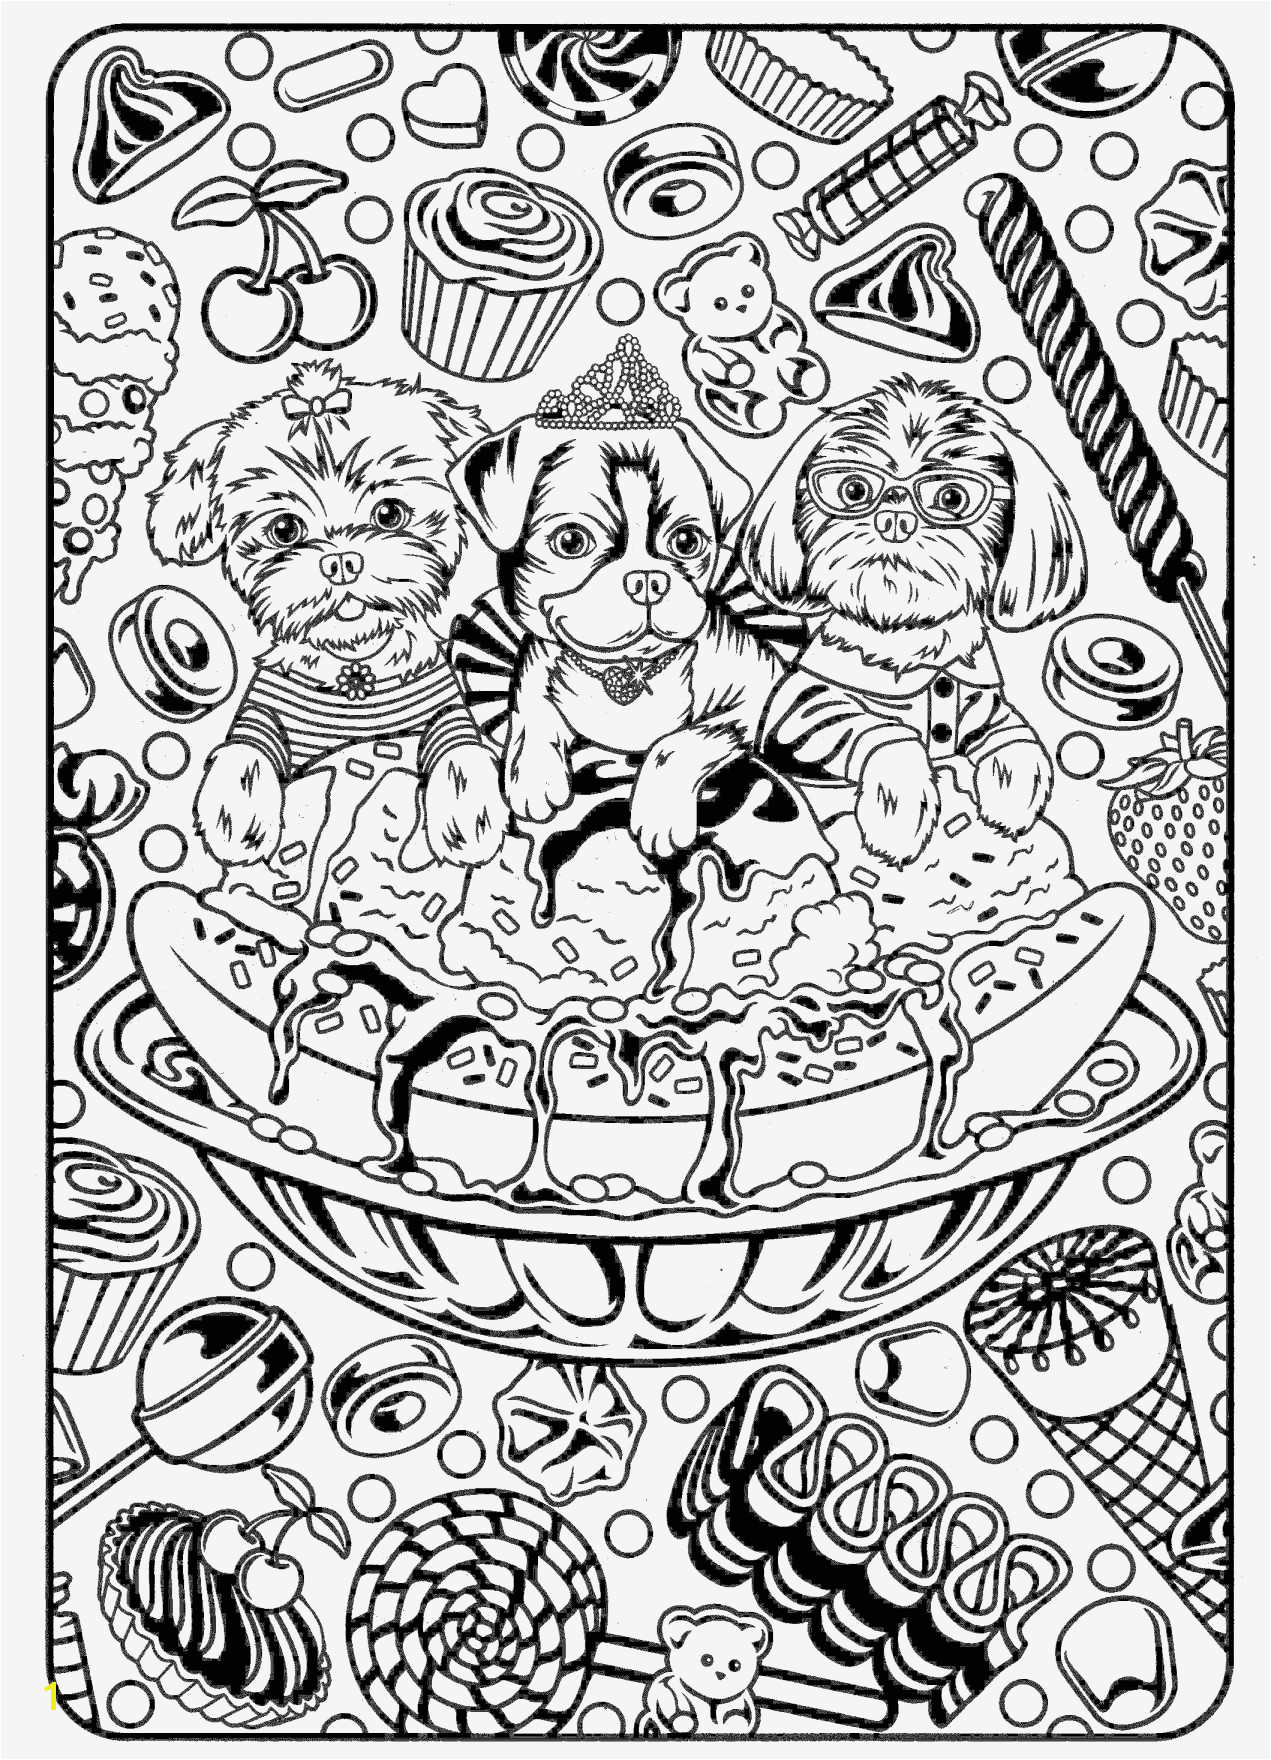 4 H Coloring Pages Tie Fighter Coloring Pages Hair Coloring Page New Hair Coloring Pages